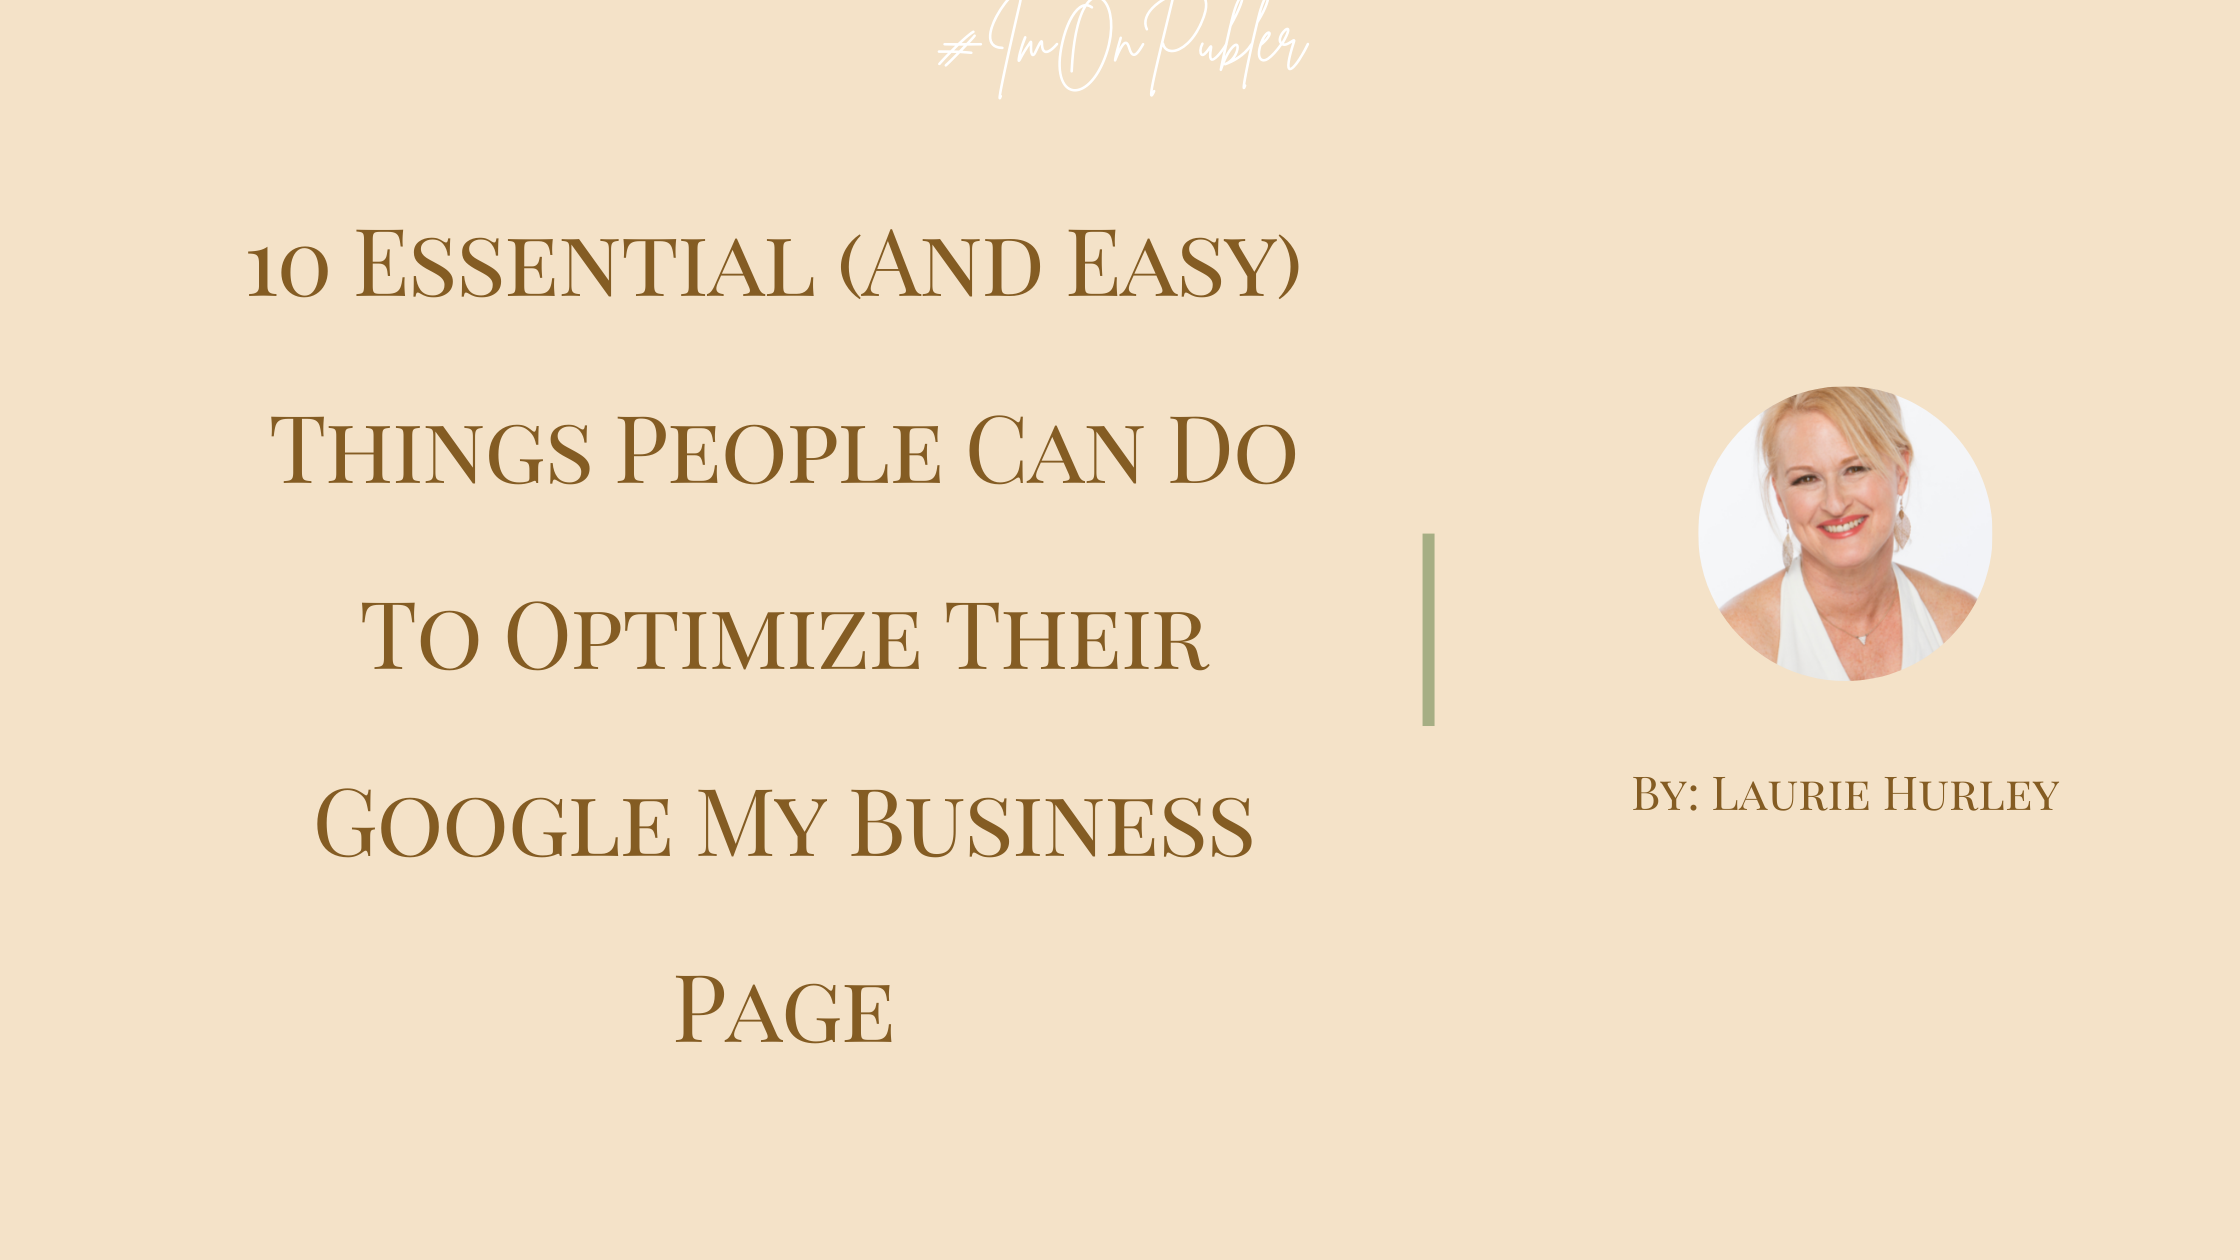 10 Essential (And Easy) Things People Can Do To Optimize Their Google My Business Page by Laurie S Hurley